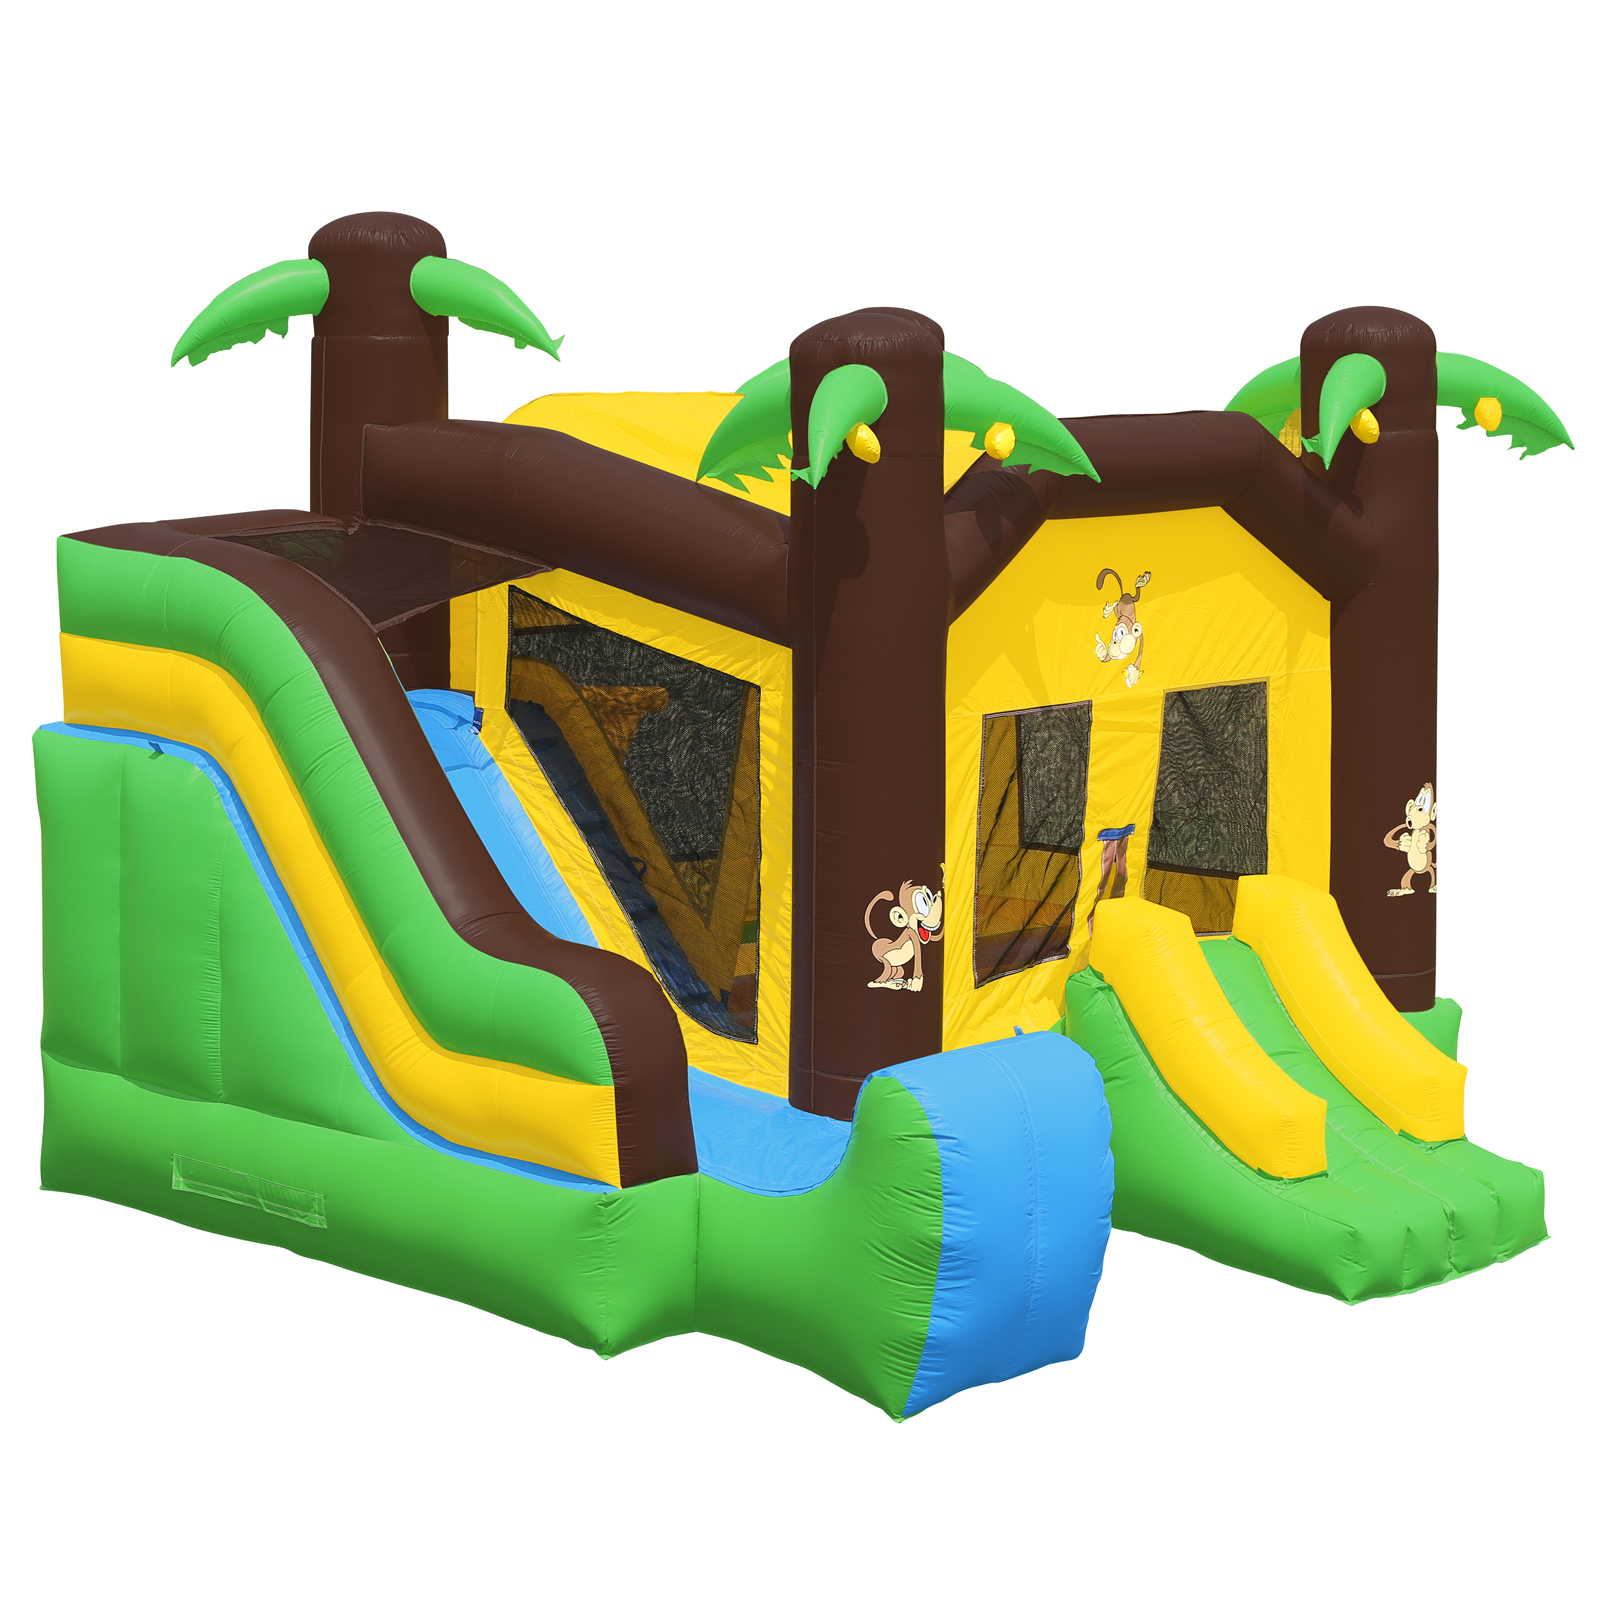 Inflatable HQ Commercial Grade Jungle Bounce House 100% PVC with Blower and Slide